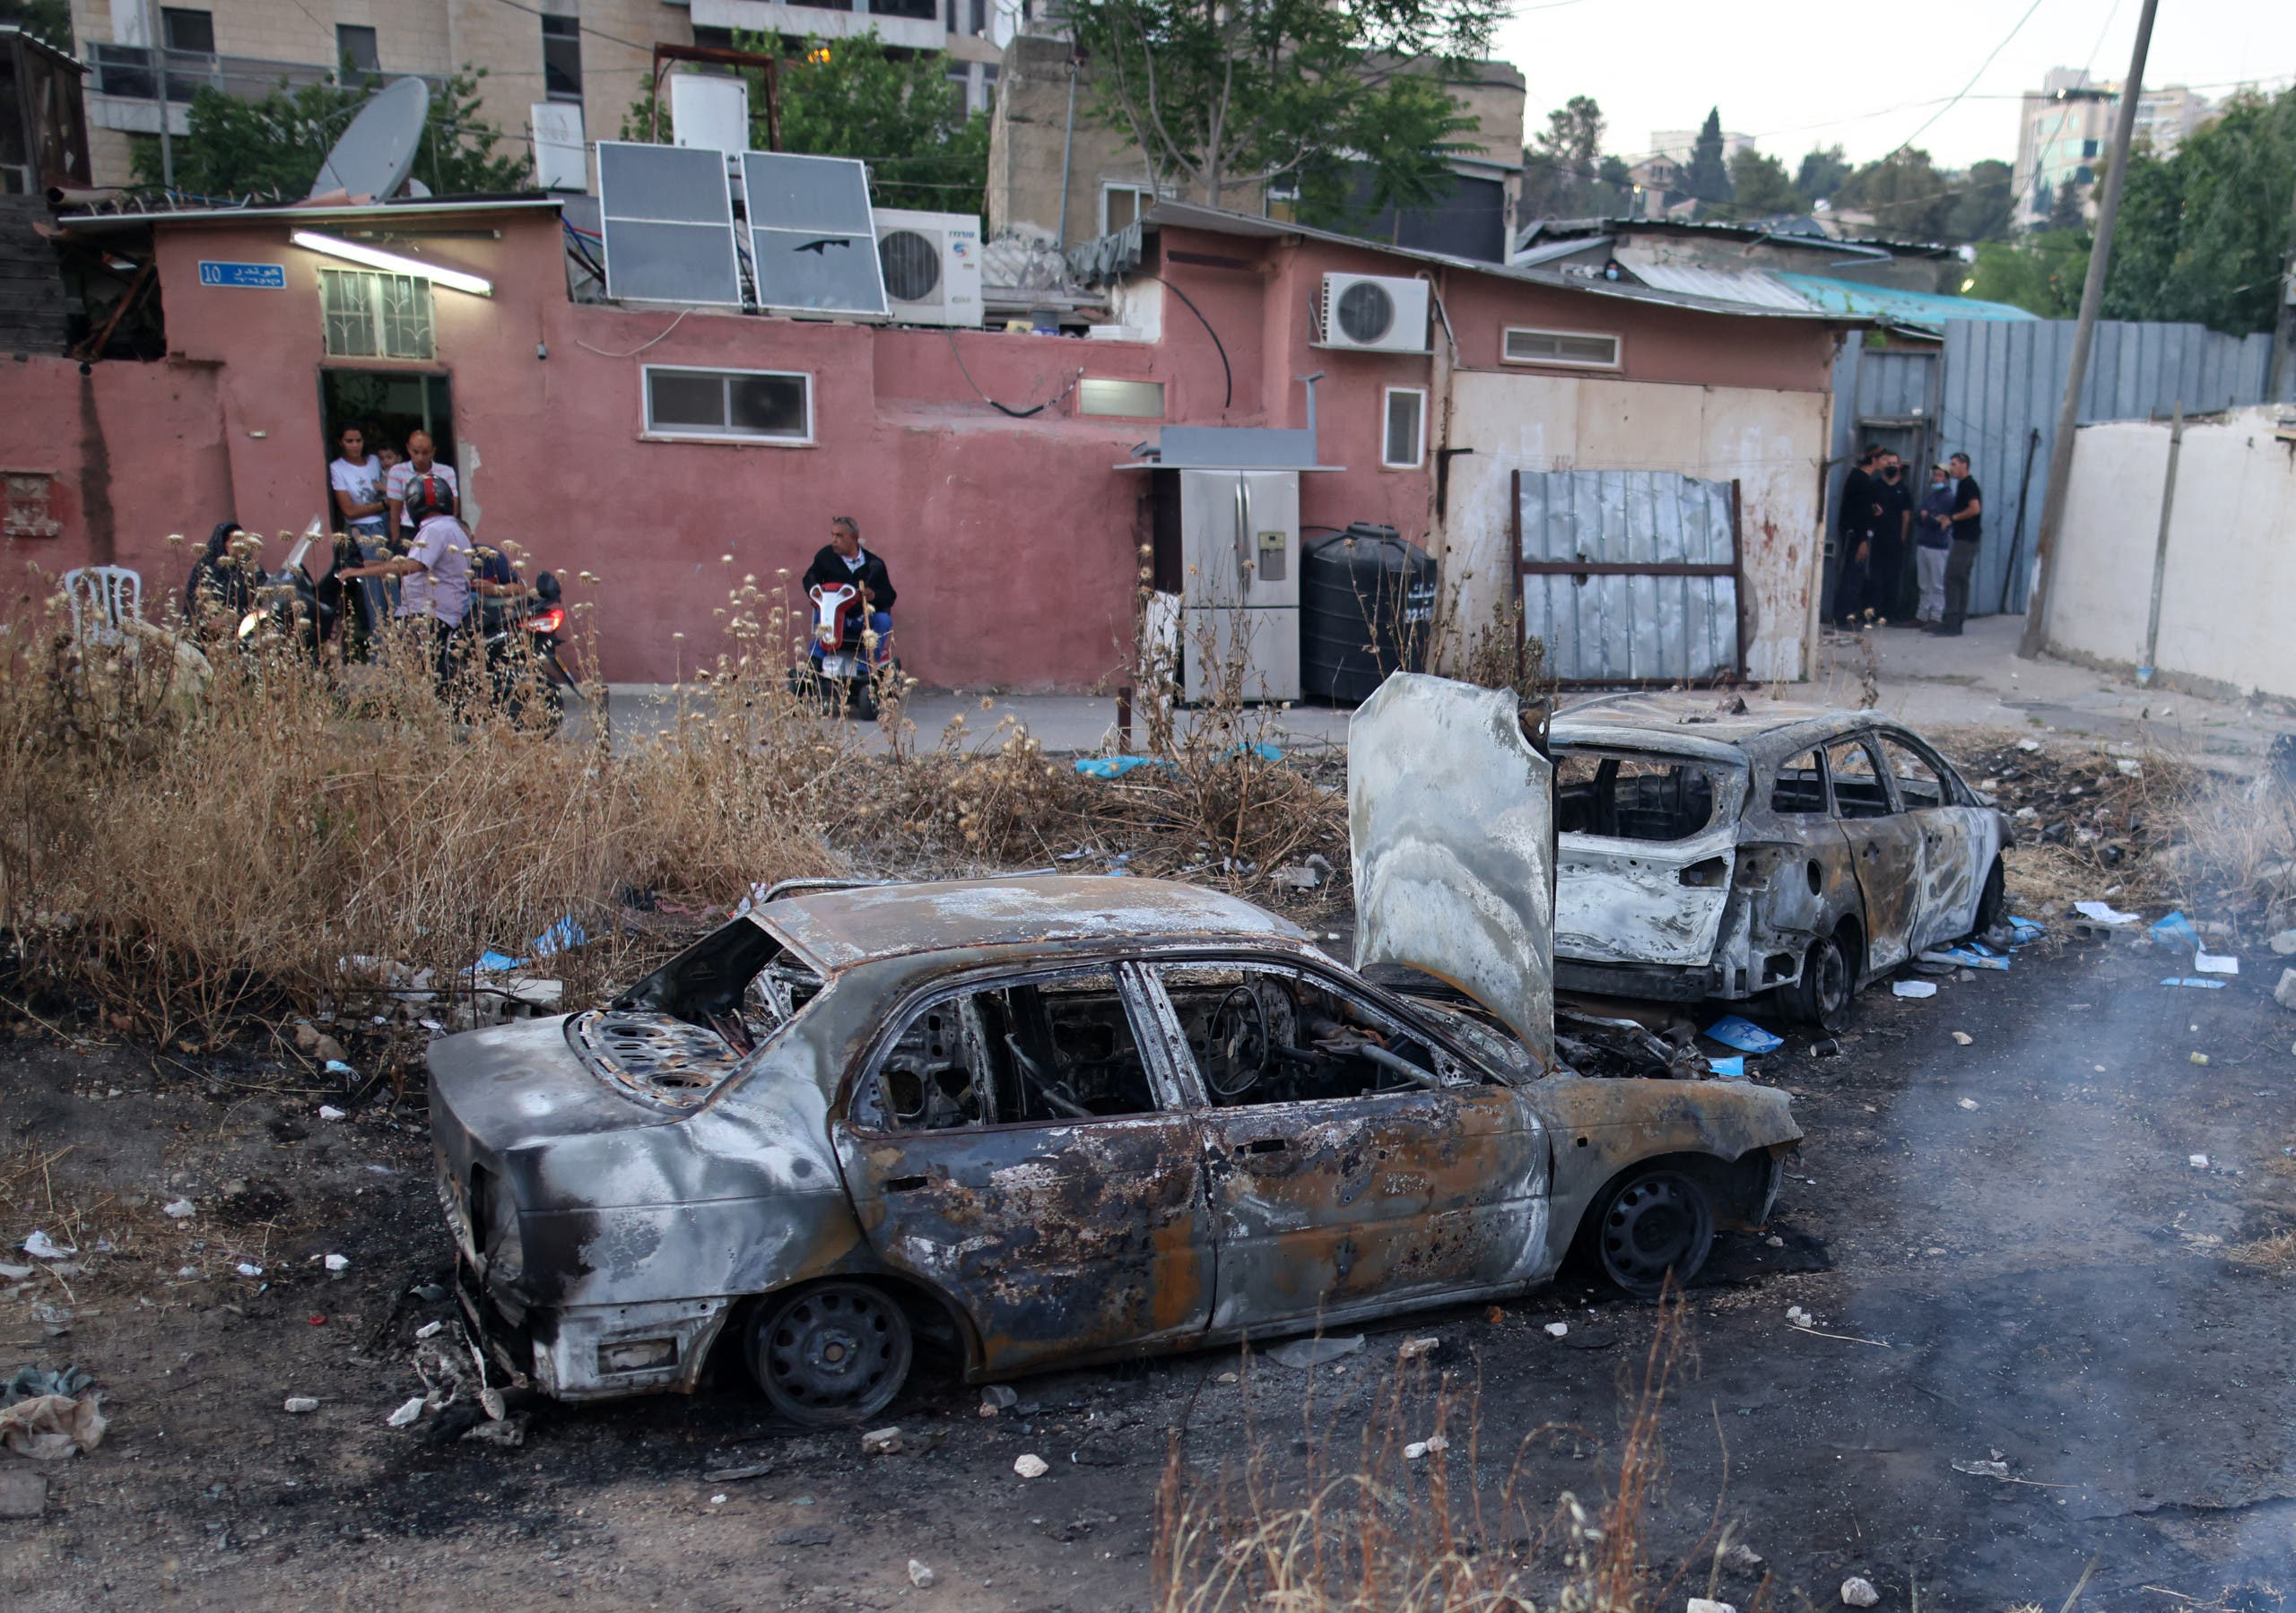 UNRWA: Leave Israel die Stop the eviction of the people of Sheikh Jarrah